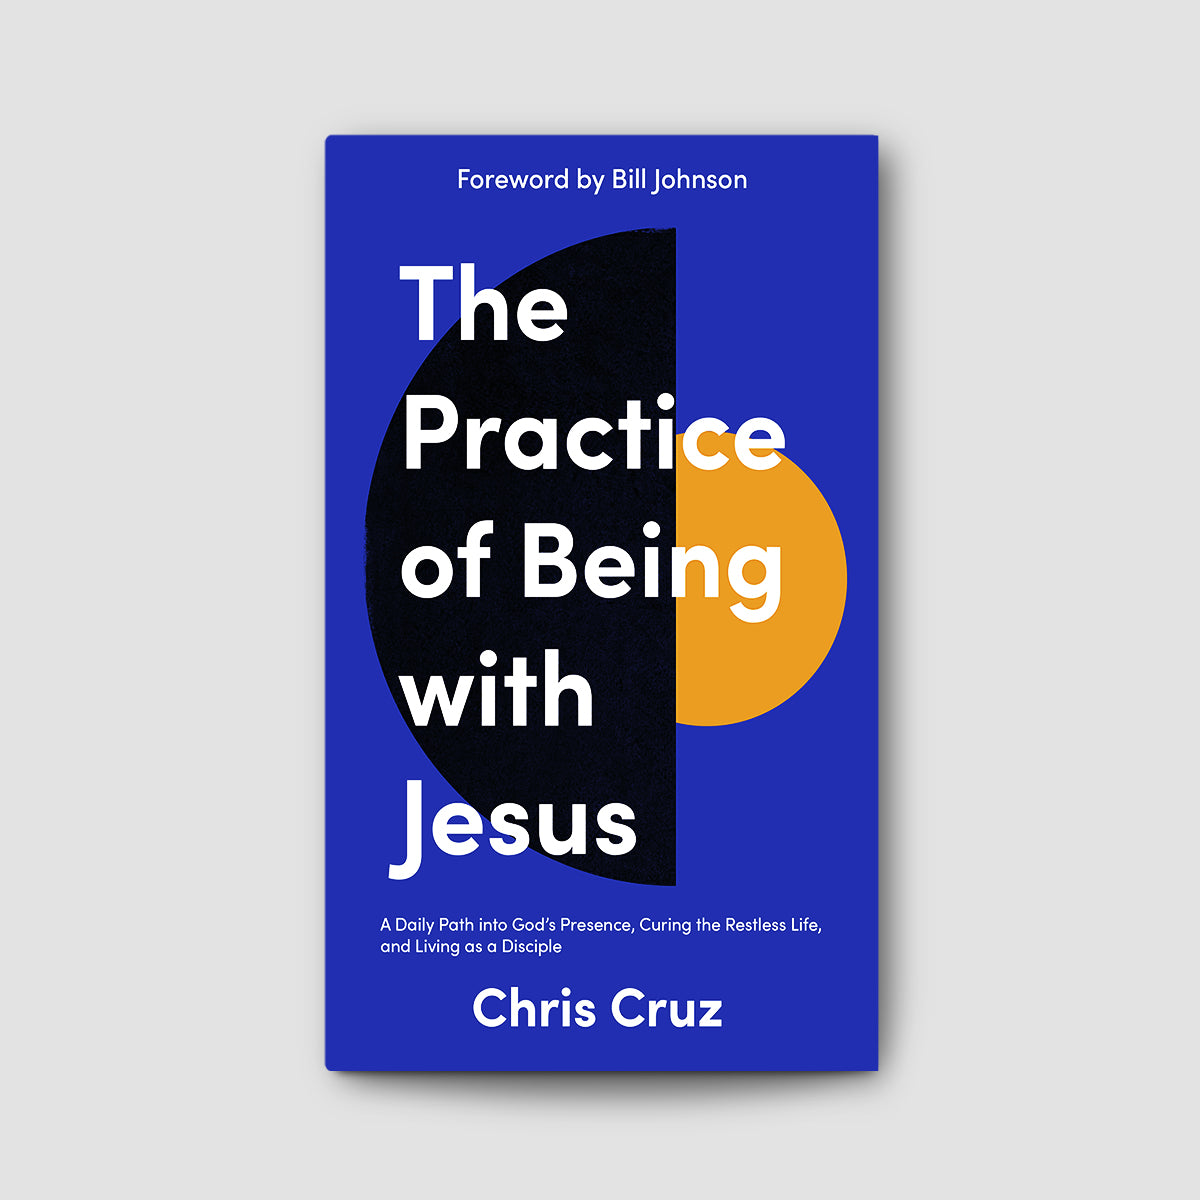 The Practice of Being With Jesus: A Daily Path into God's Presence, Curing the Restless Life, and Living as a Disciple